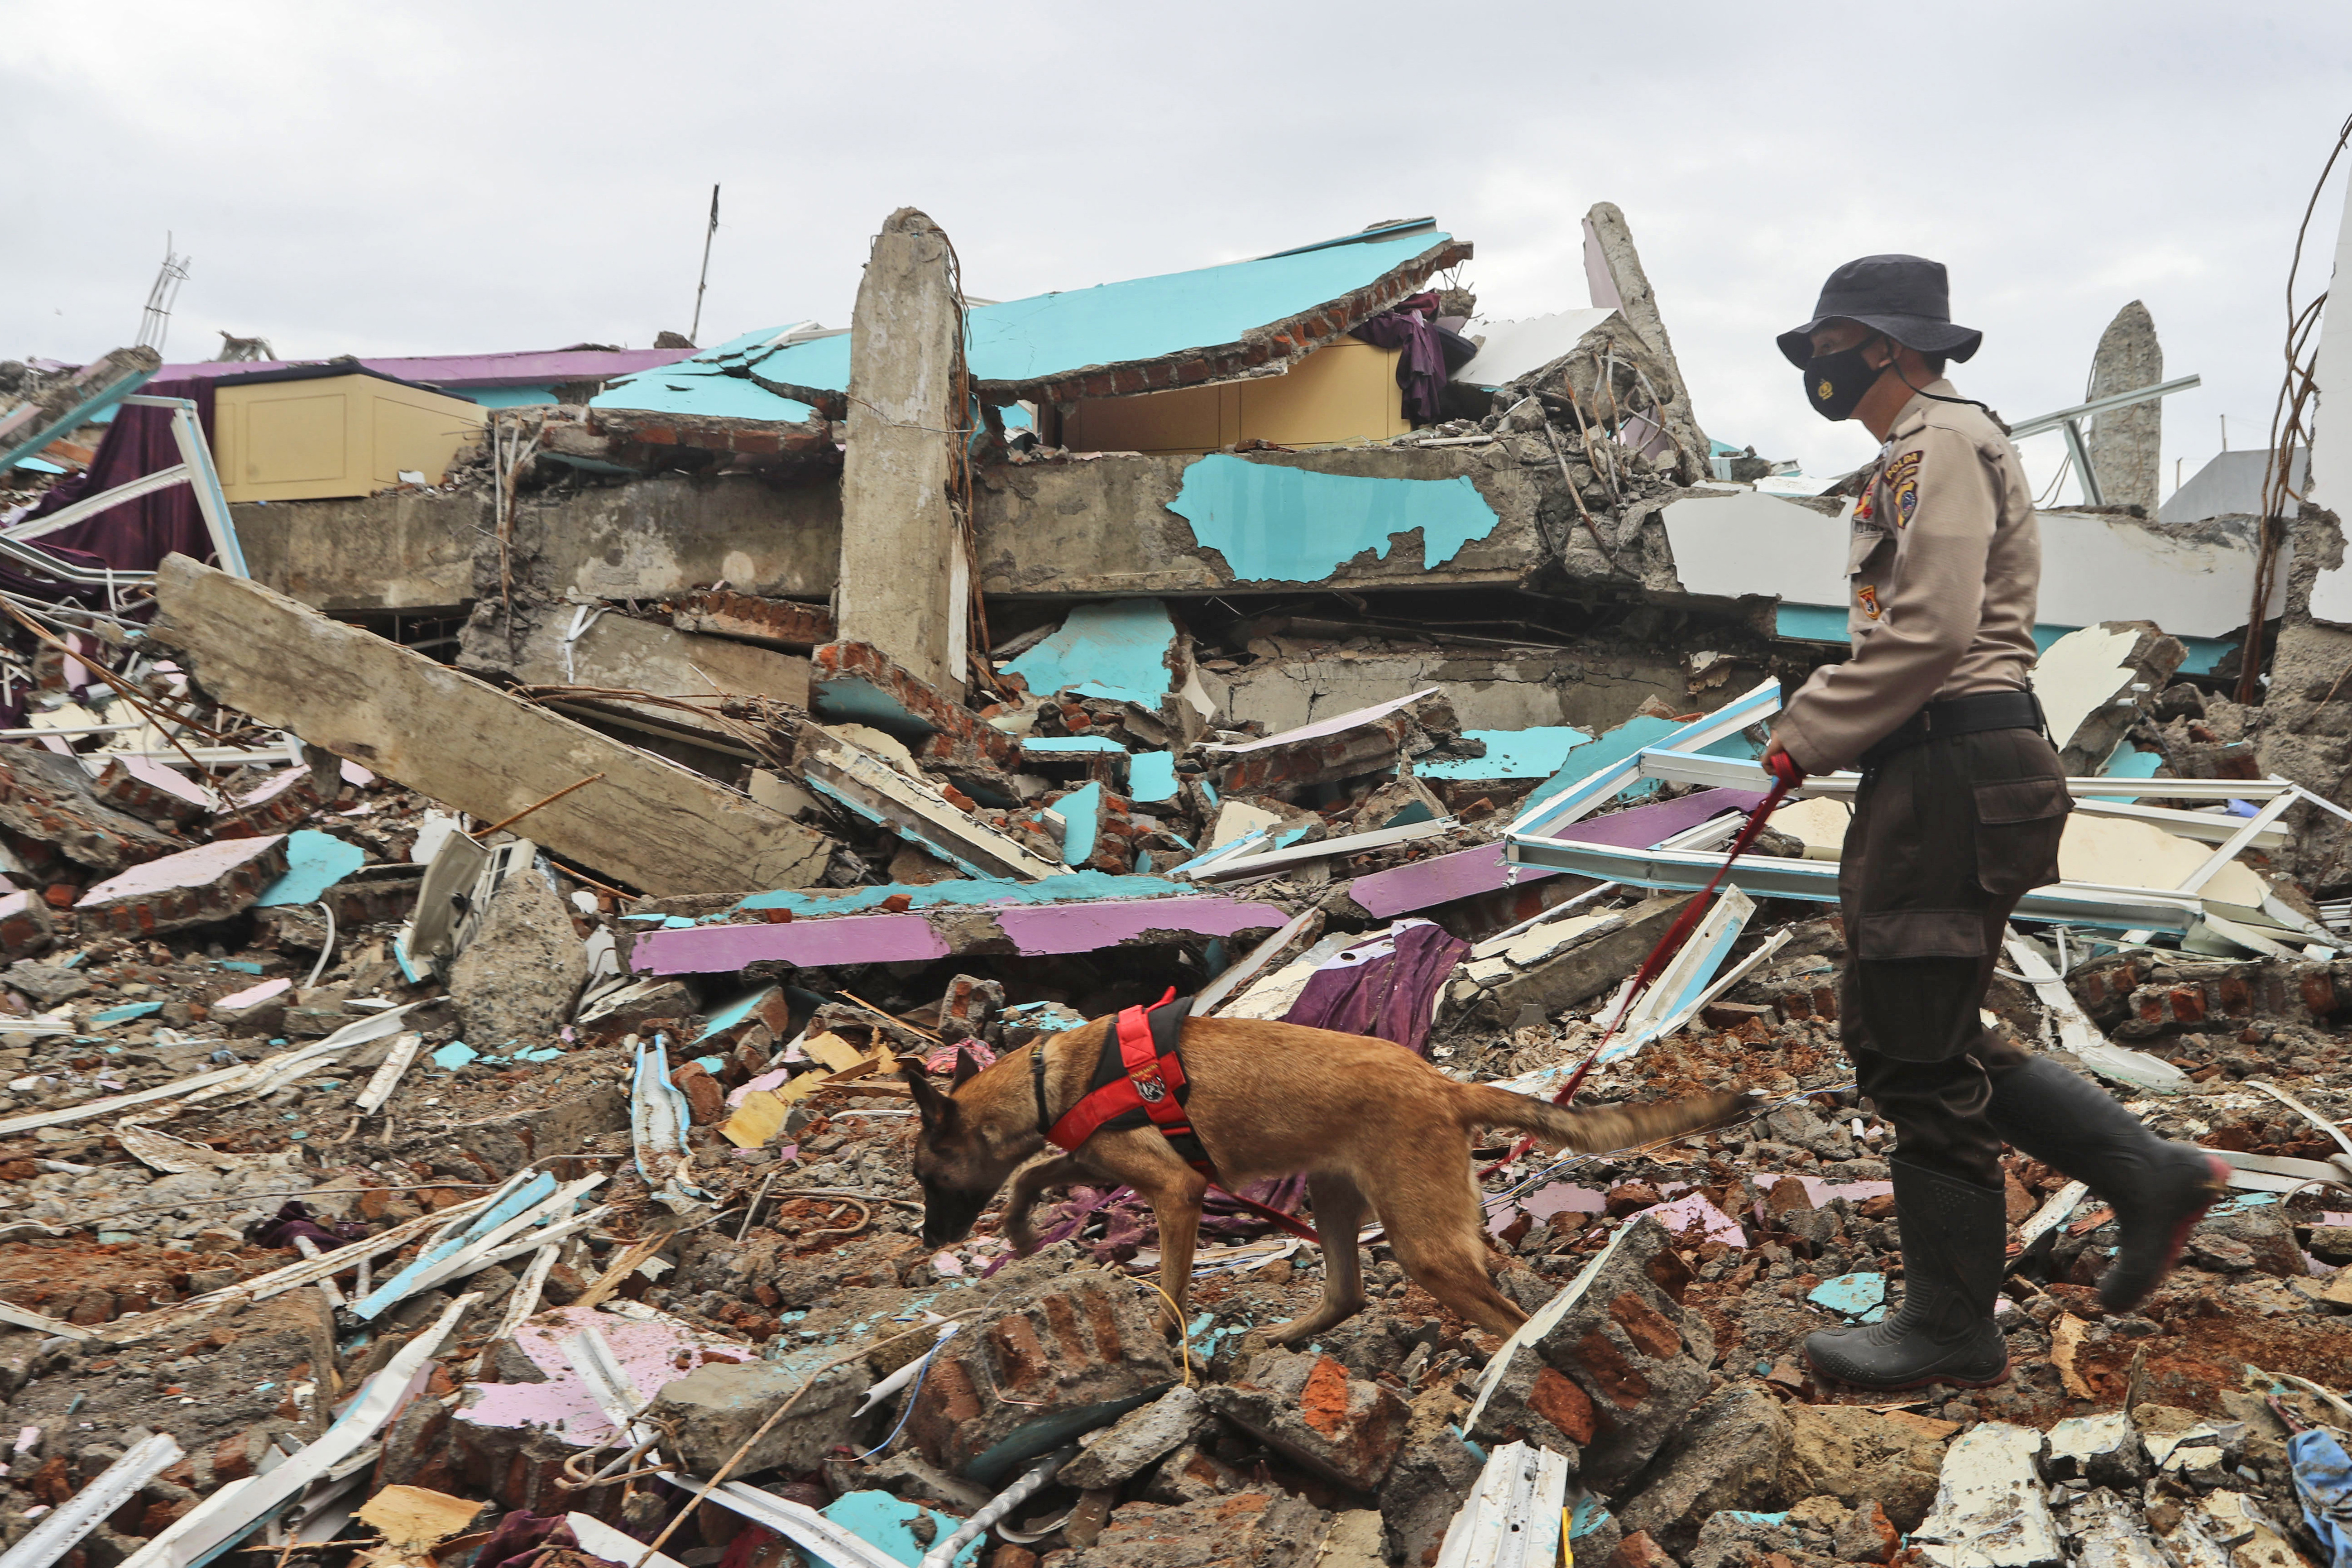 Indonesia earthquake: Rescue teams uncover more bodies after 6.2-magnitude disaster